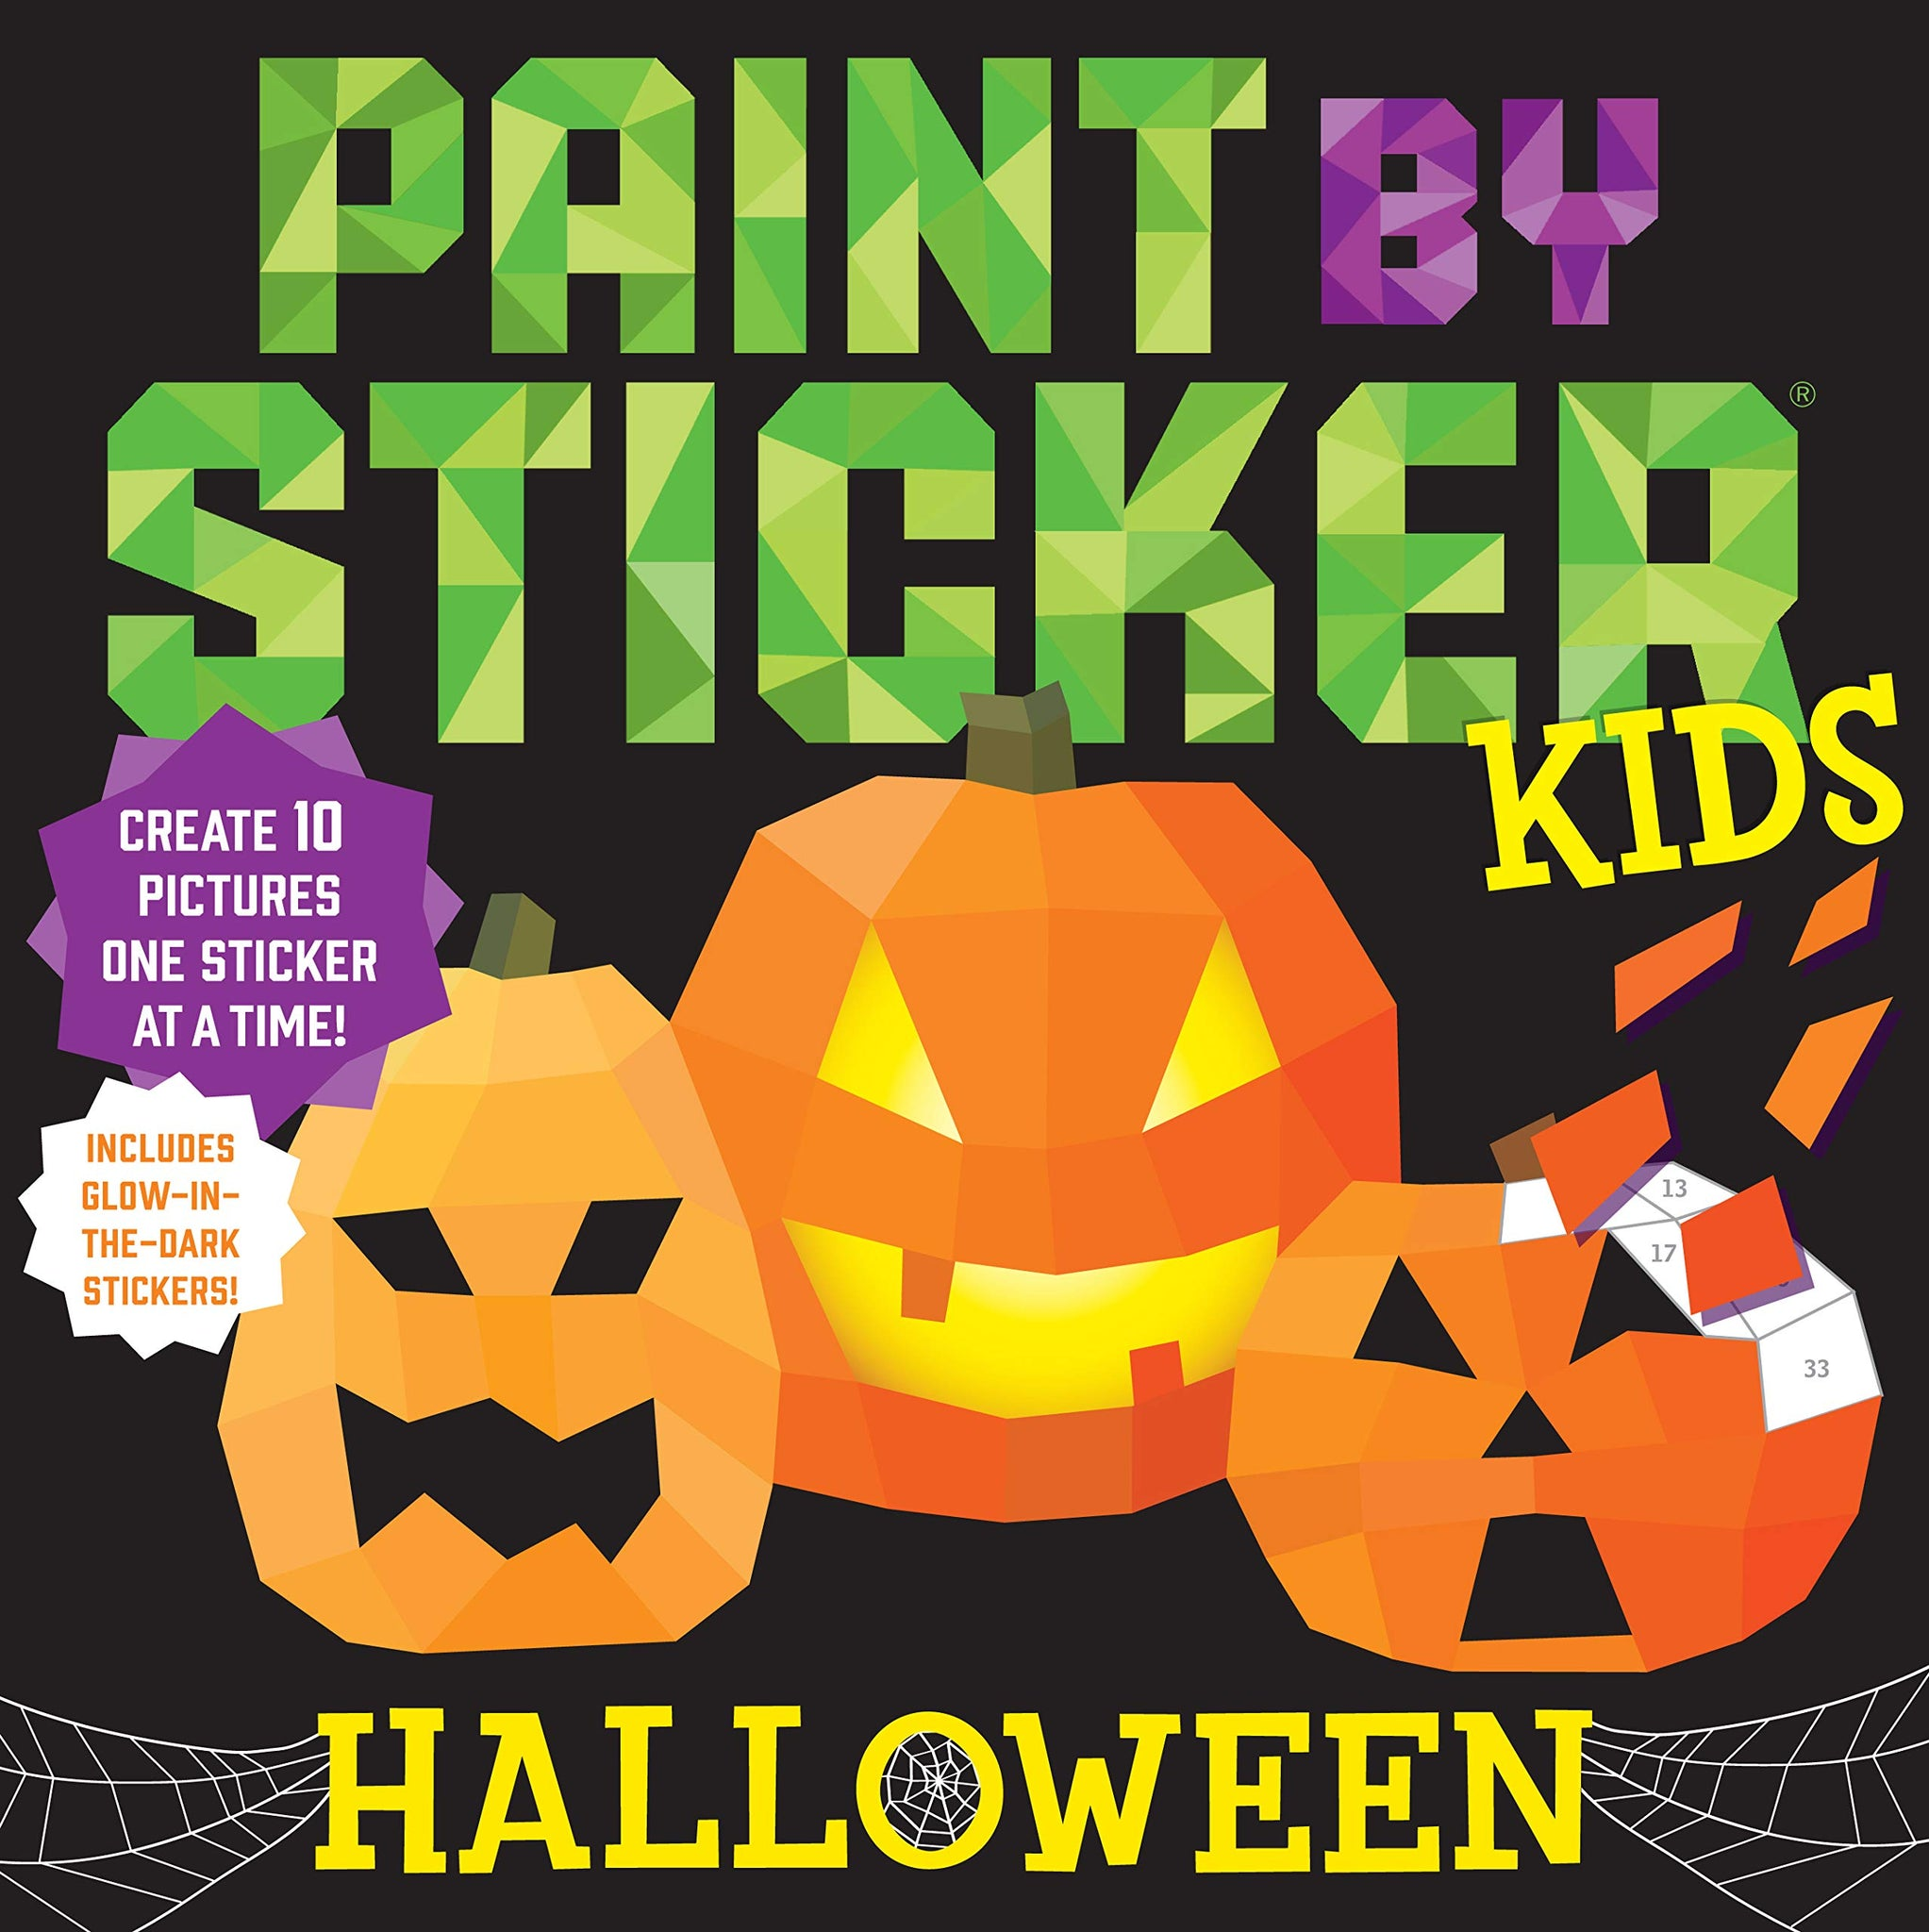 Paint By Sticker Kids - Halloween